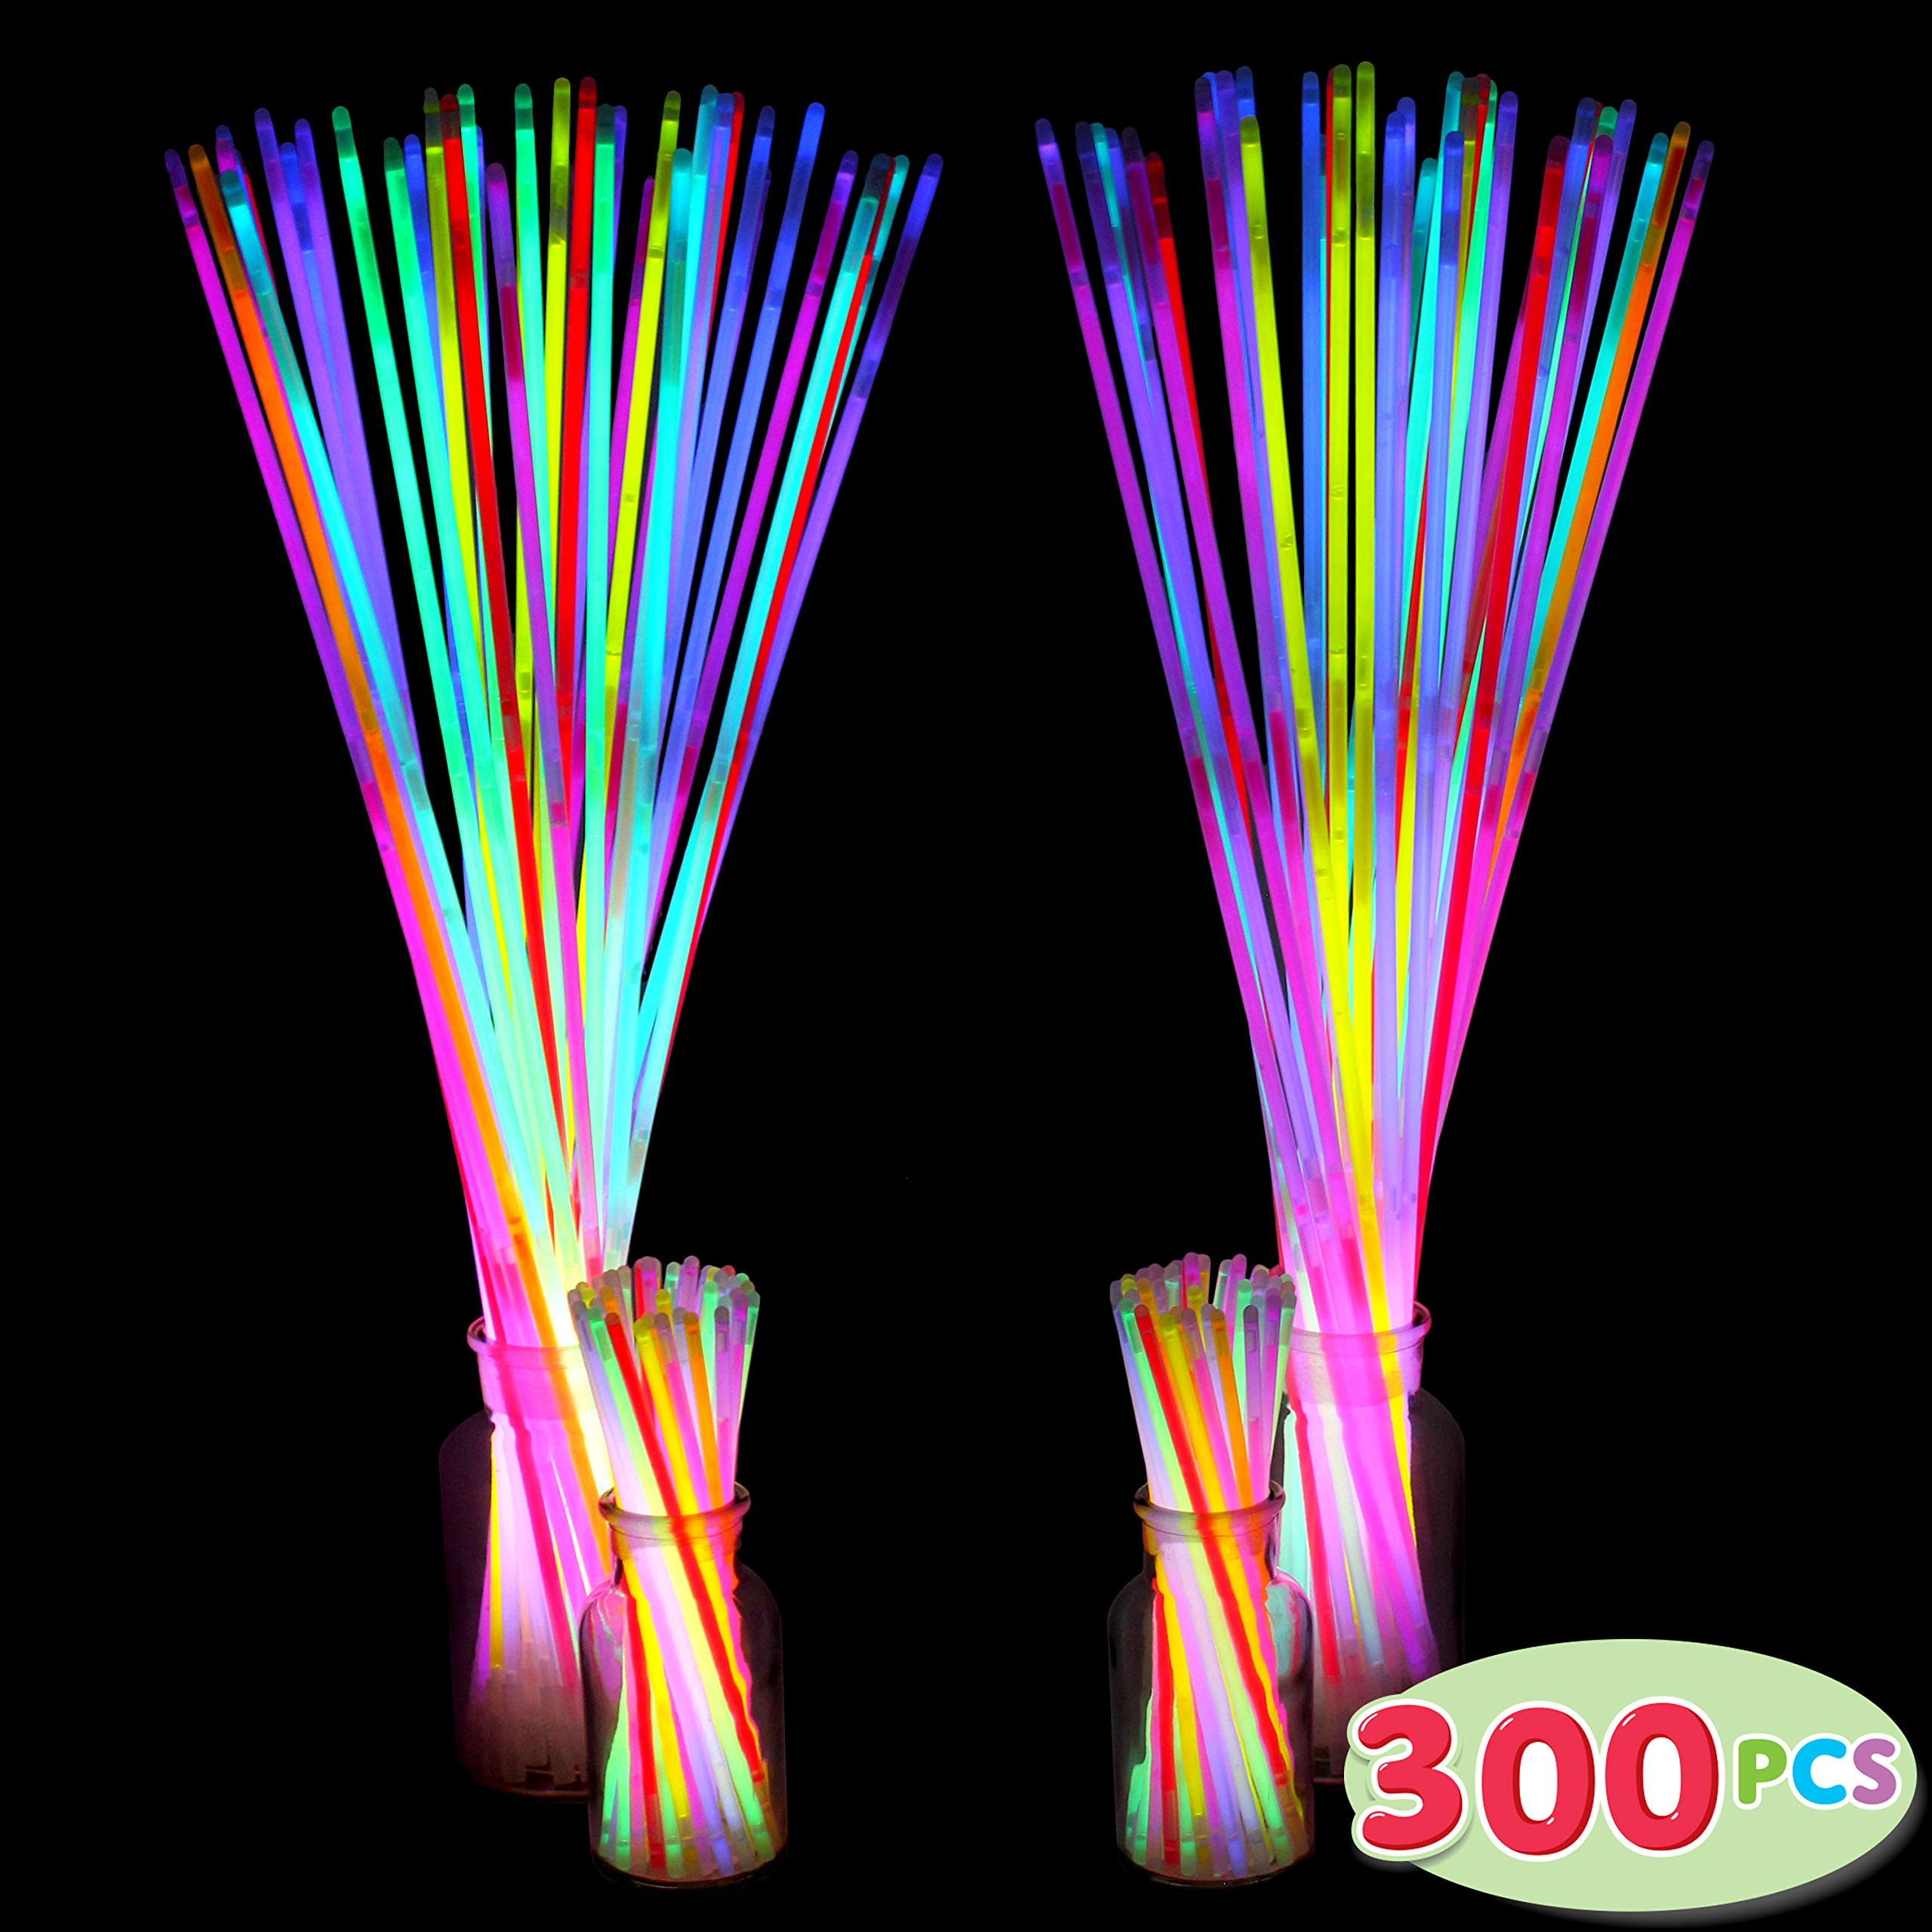 300 Pack Glow Sticks with 100 22'' Necklaces + 200 8'' Bracelets; Connector Included; Glowstick Bundle Party Favors, Glow in the Dark Party Bulk Supplies, Neon Light Up Accessories for Kids and Adults. by JOYIN (Image #2)